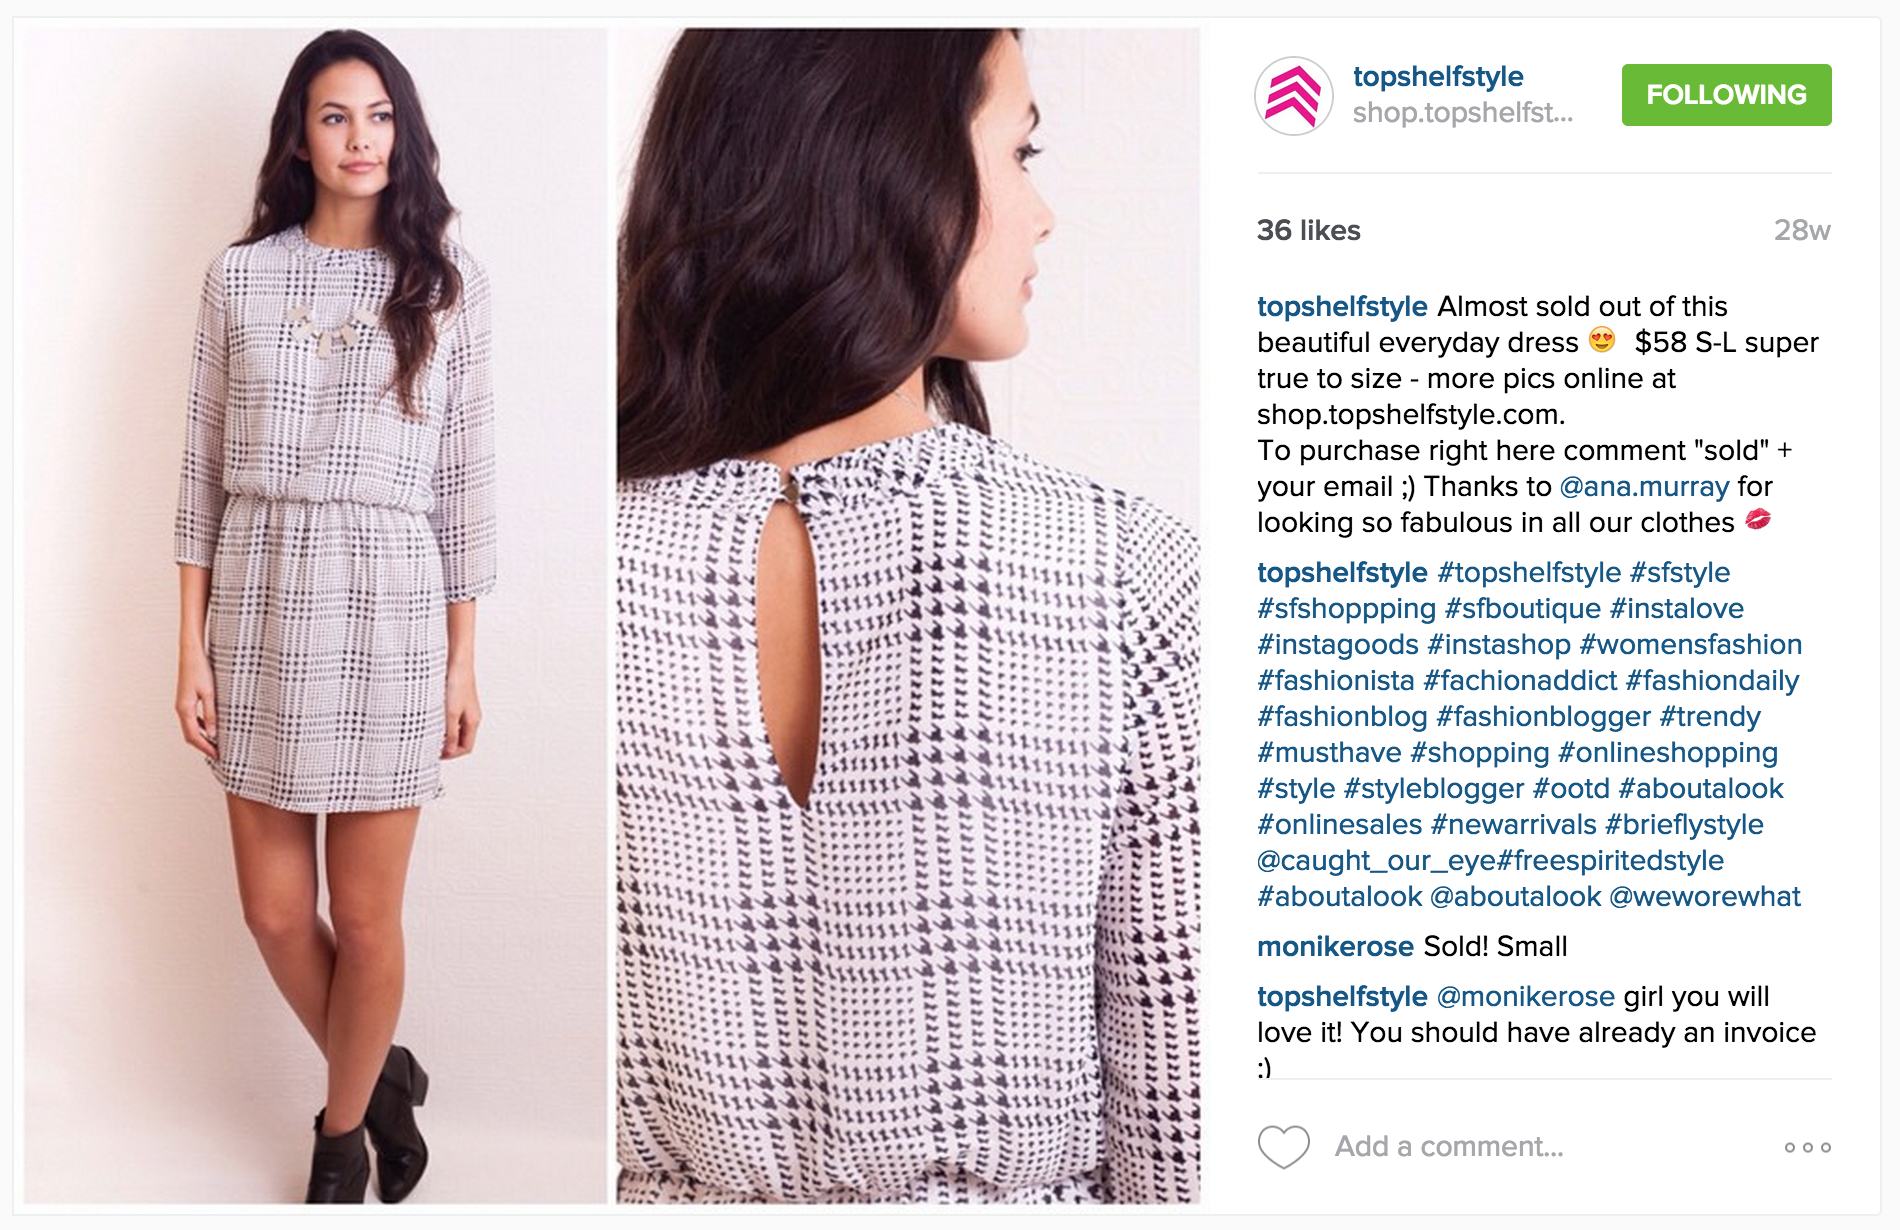 Types Of Posts That Do Extremely Well On Instagram Vend Retail Blog - Create custom invoices top 10 women's online clothing stores